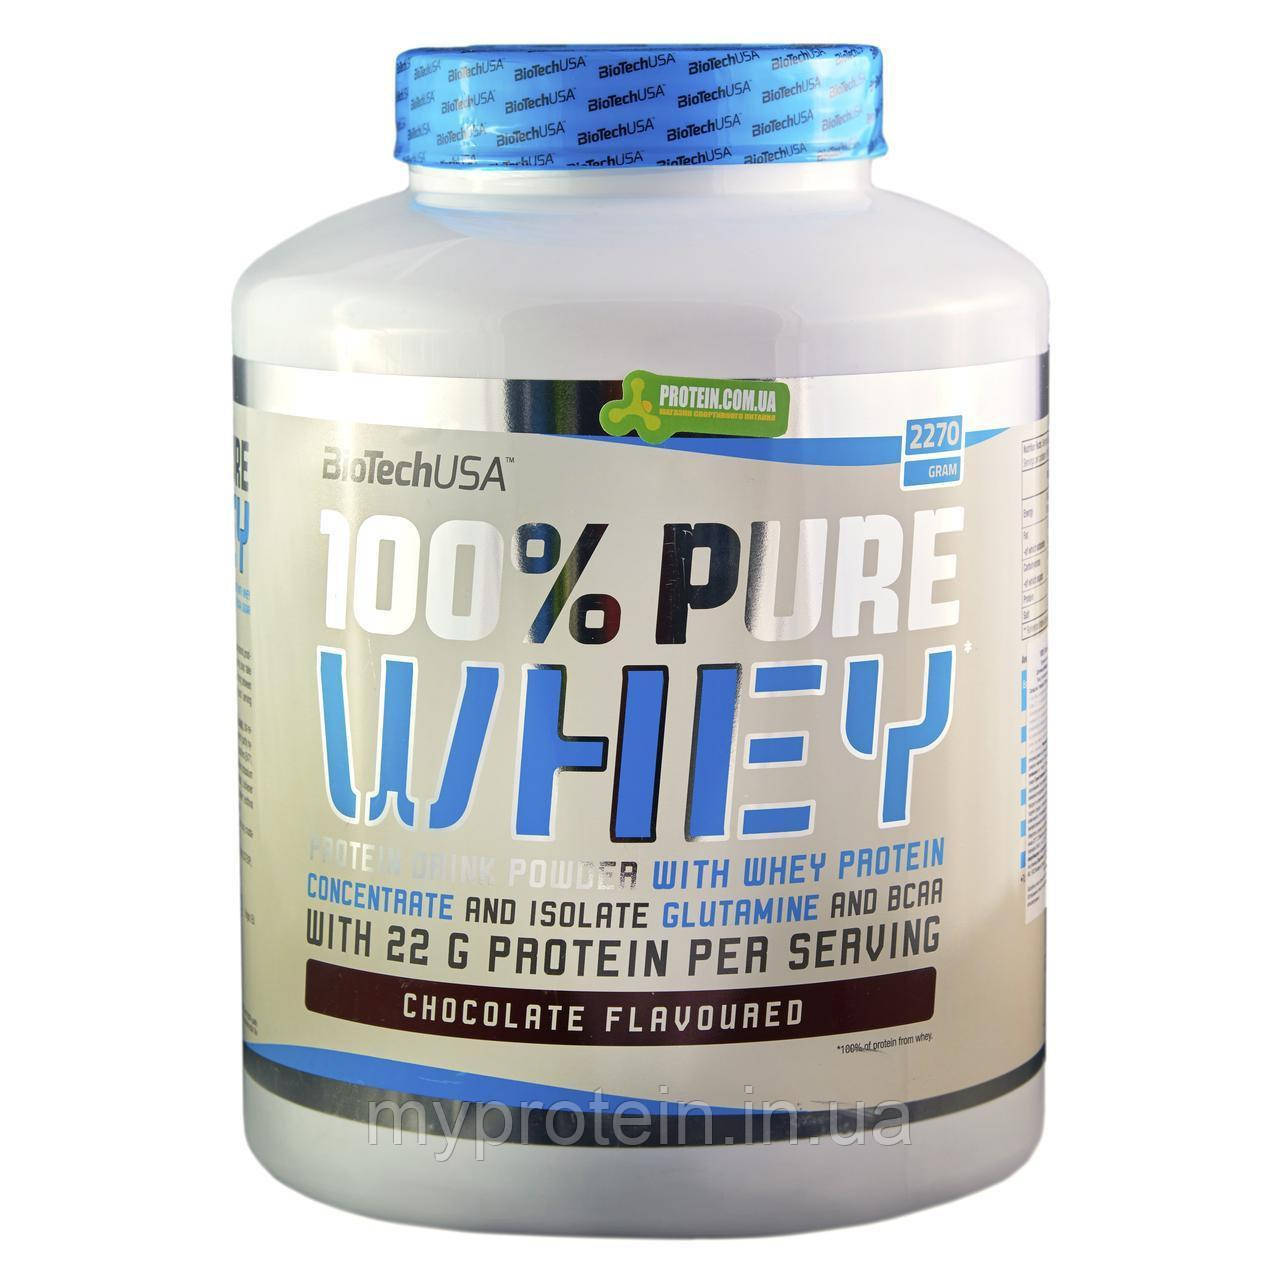 BioTech	Протеины	100% Pure Whey Lactose Free	2,27 kg